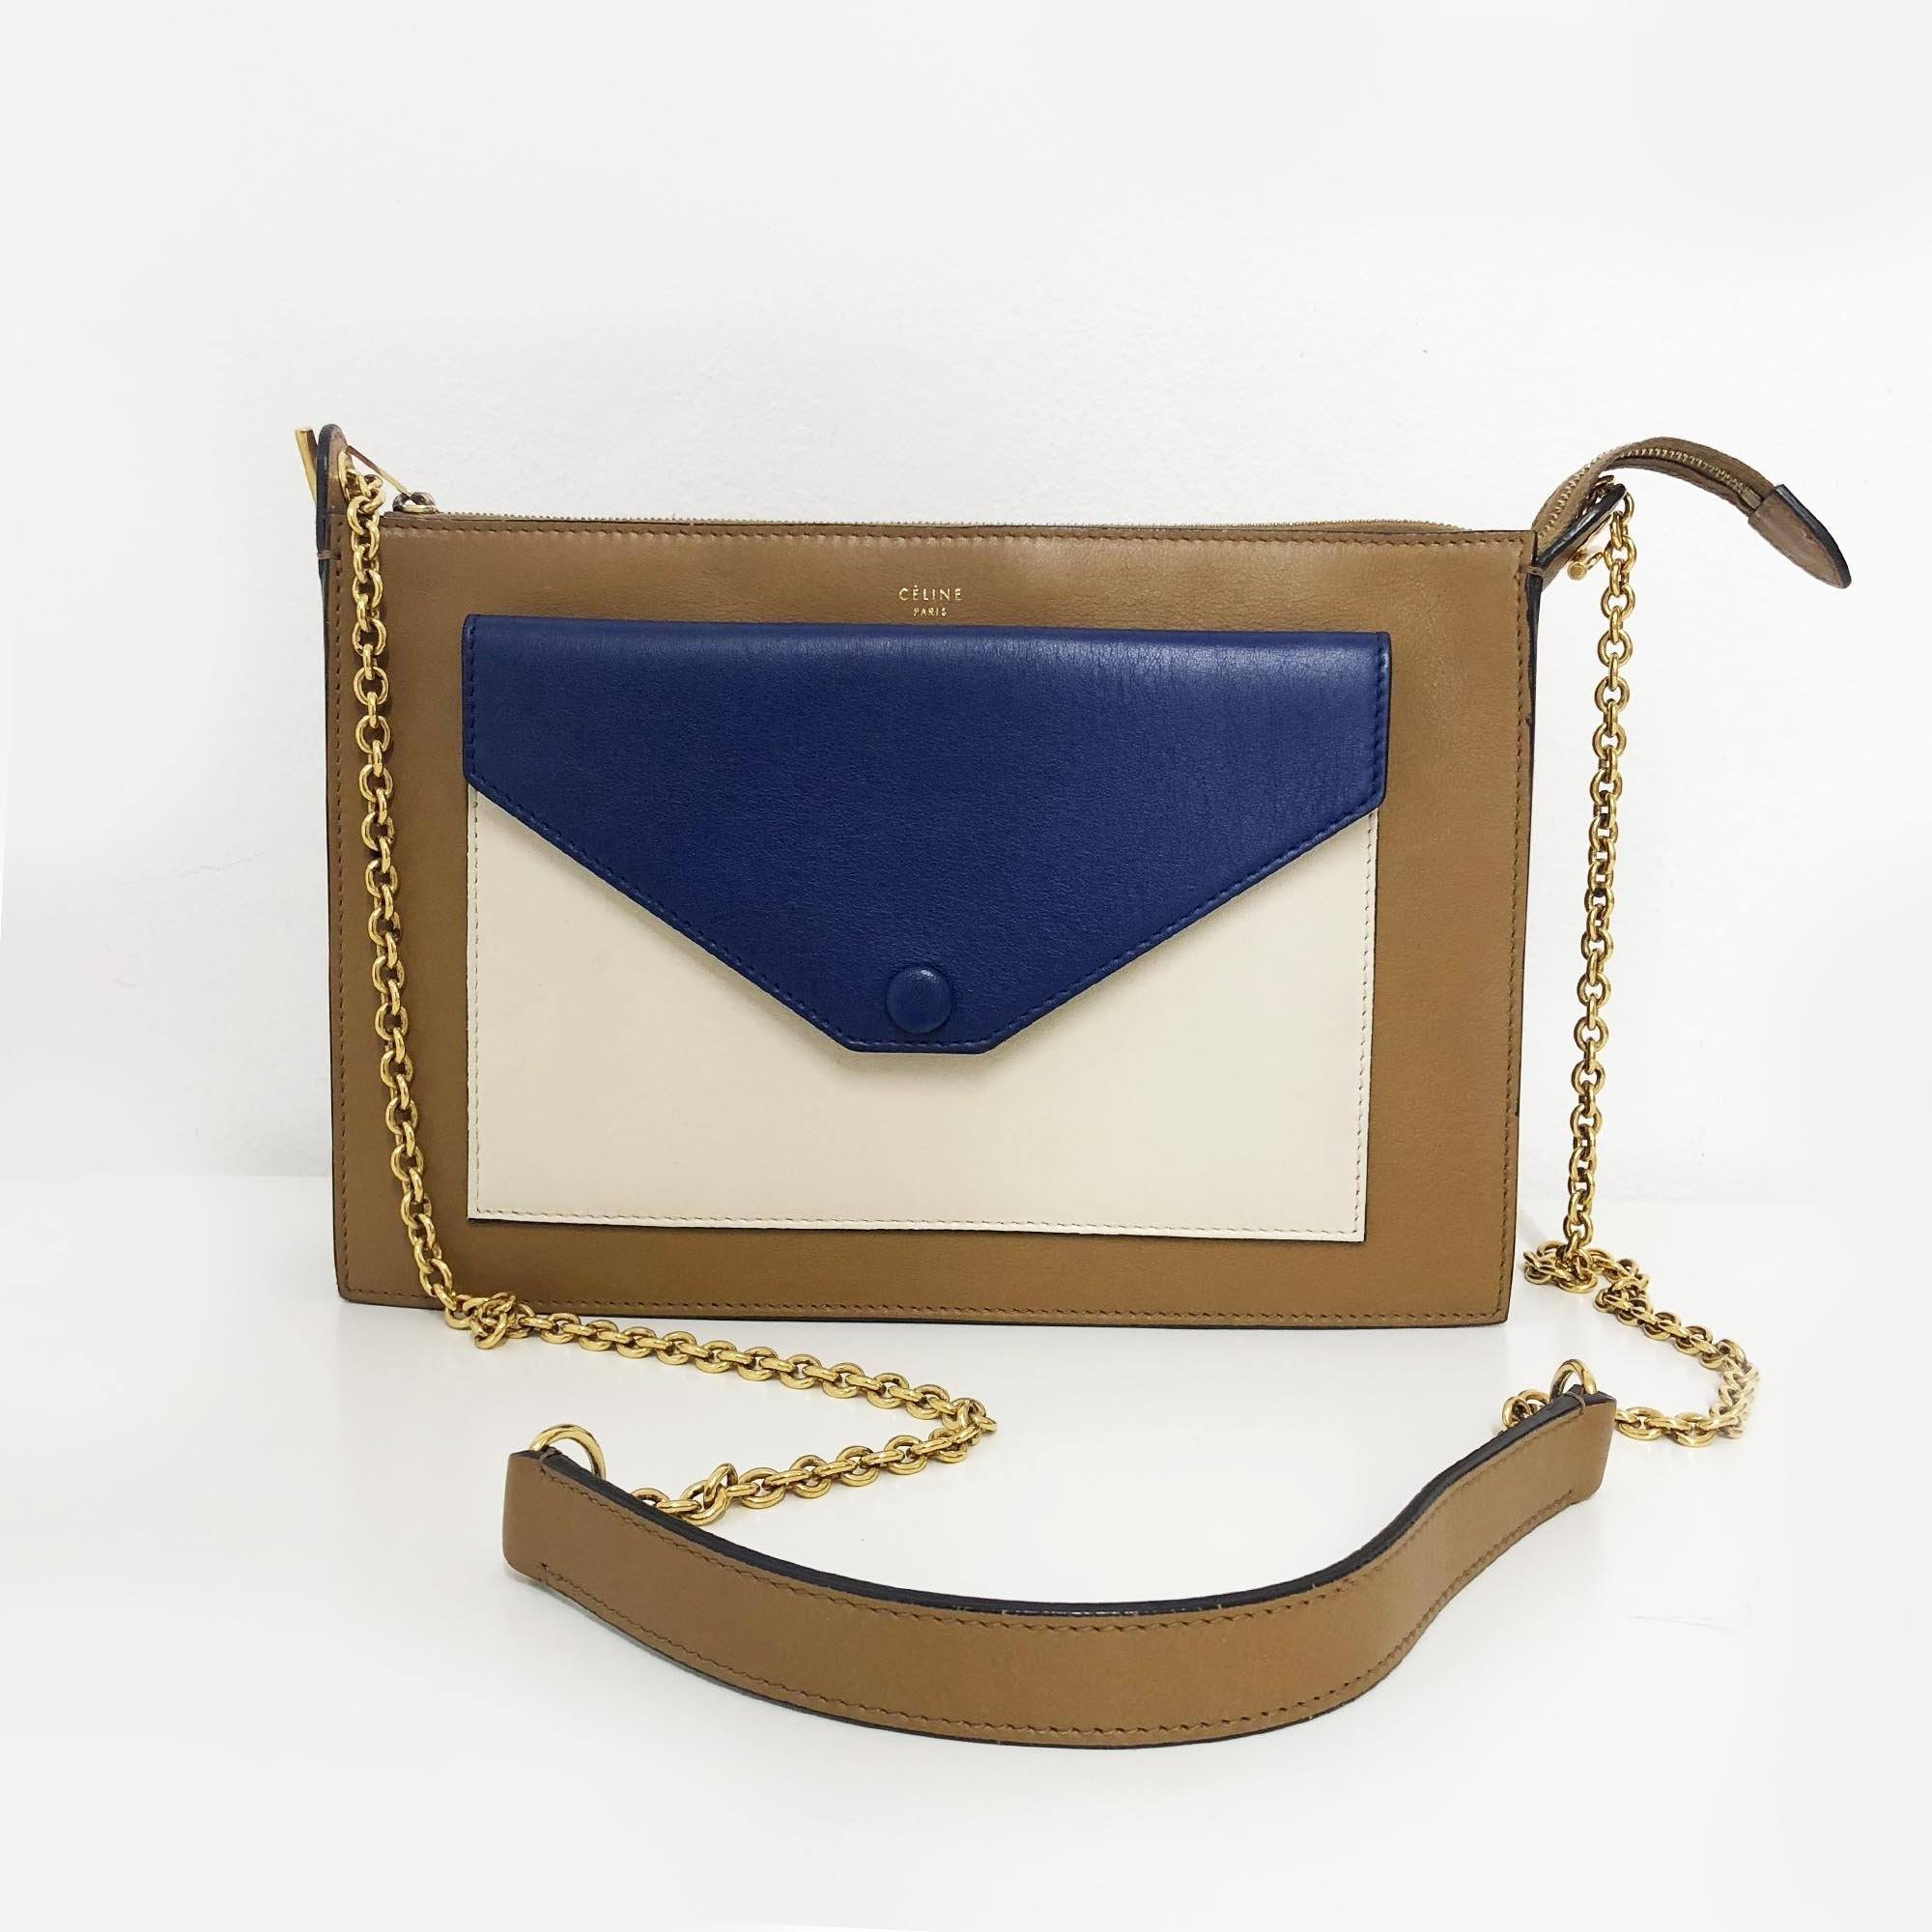 Celine Seashell Tri-Color Smooth Calfskin Leather Pocket Chain Medium Clutch Bag